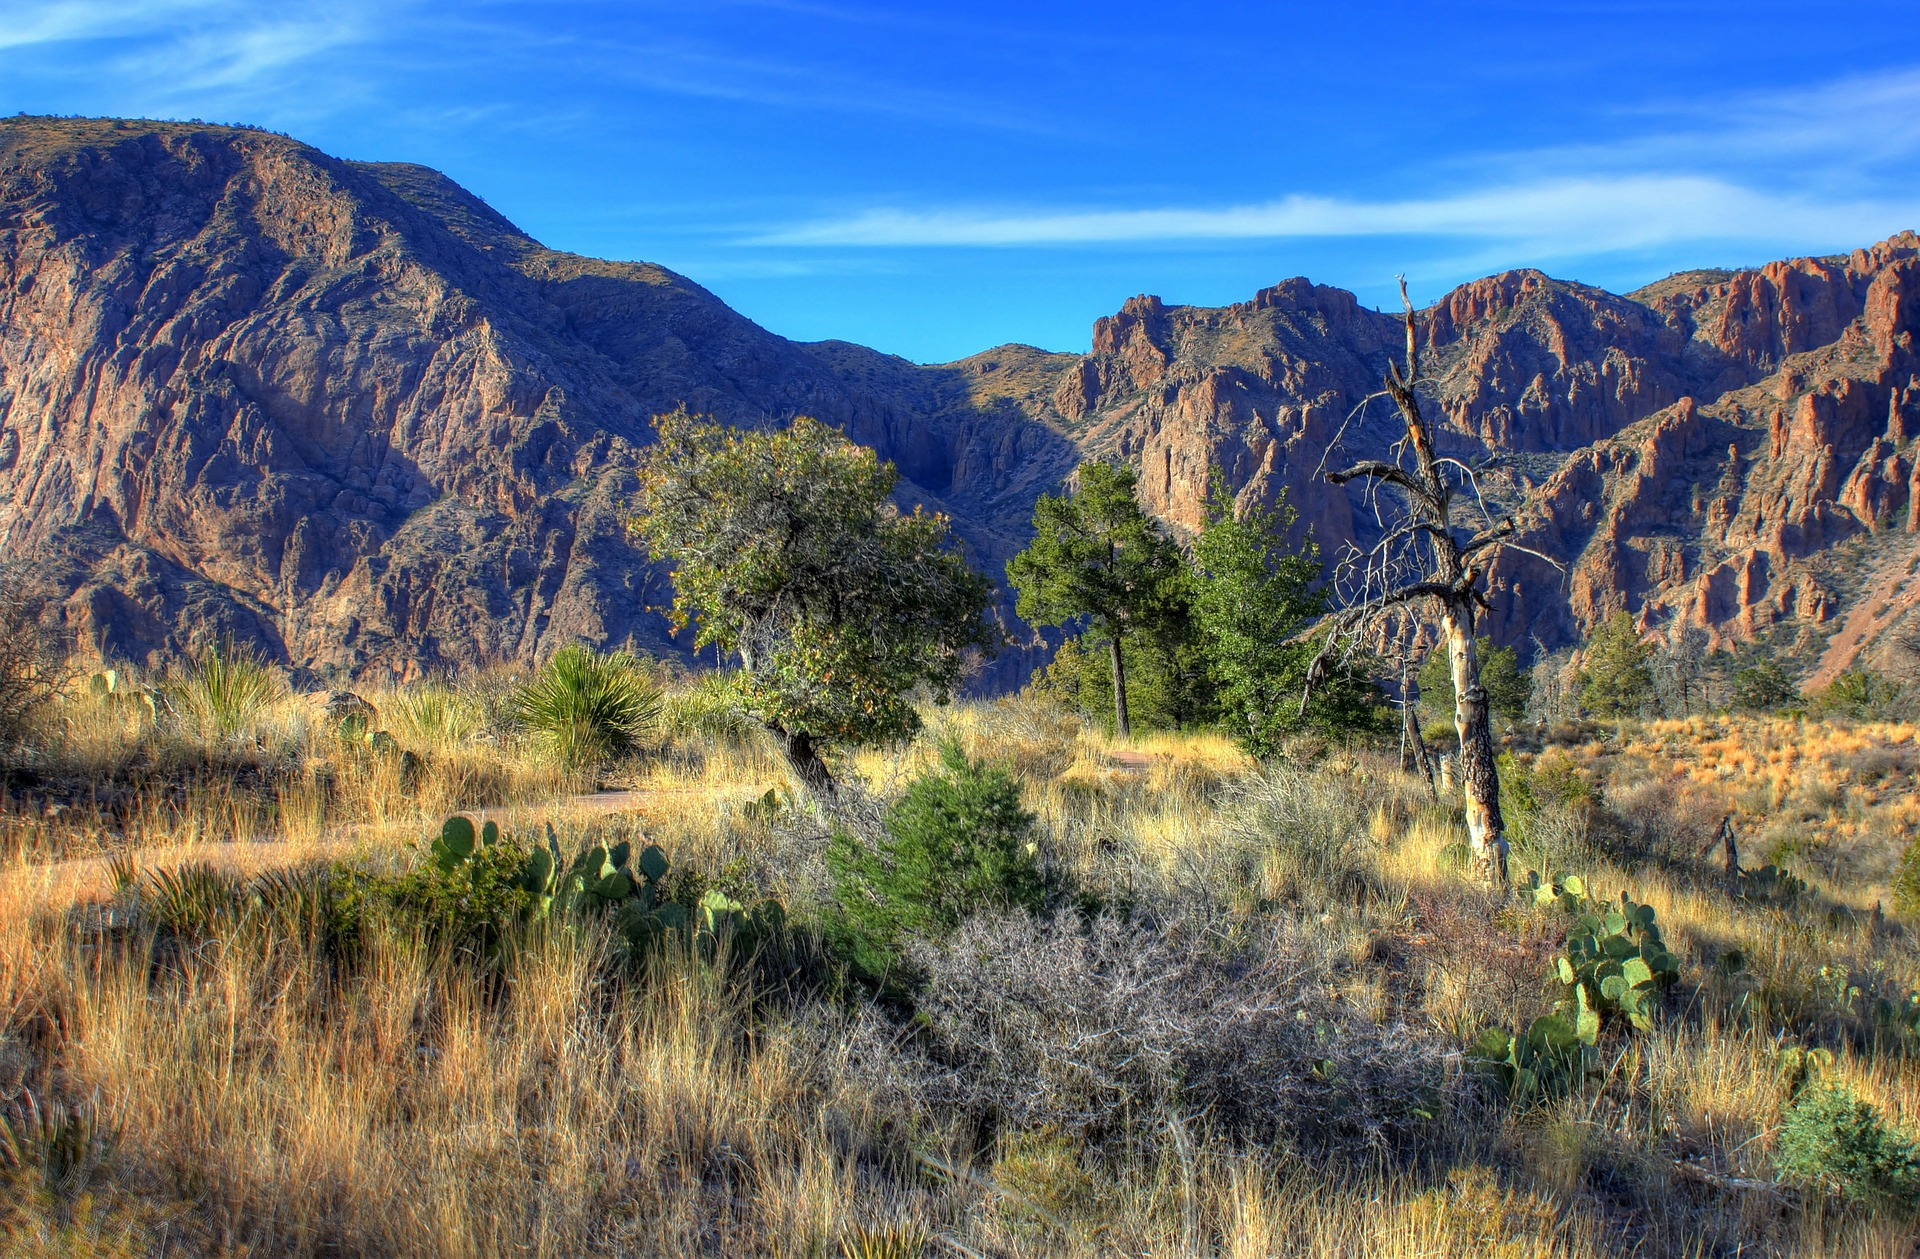 big-bend-national-park-347398_1920